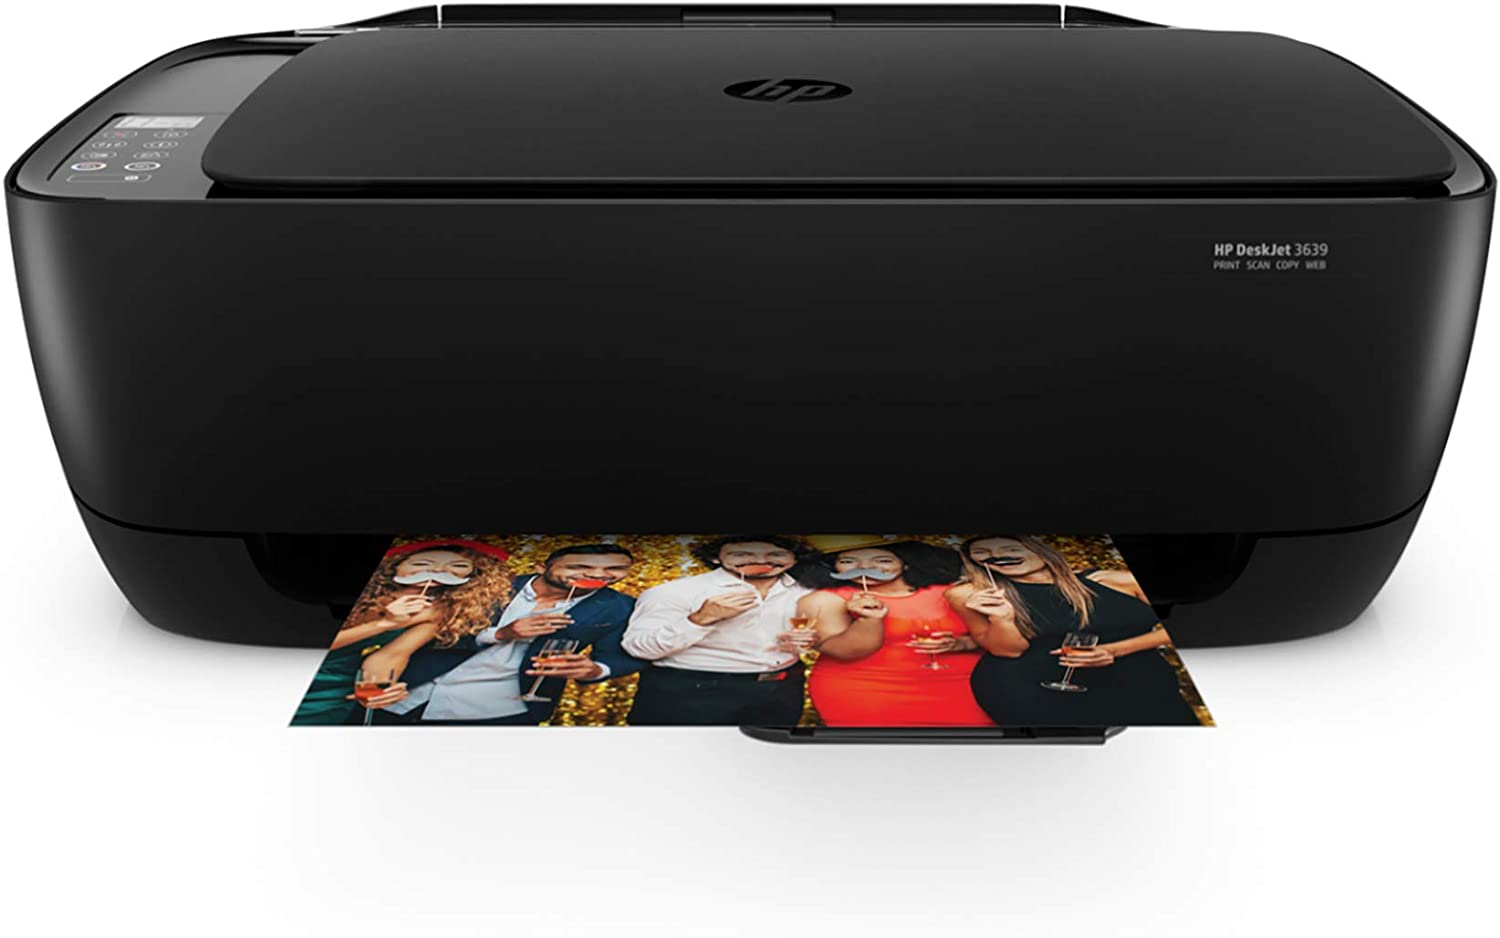 HP Deskjet 3639 Wireless All-in-One Printer (K4T98A), Large, Black, Model:K4T98A#B1H